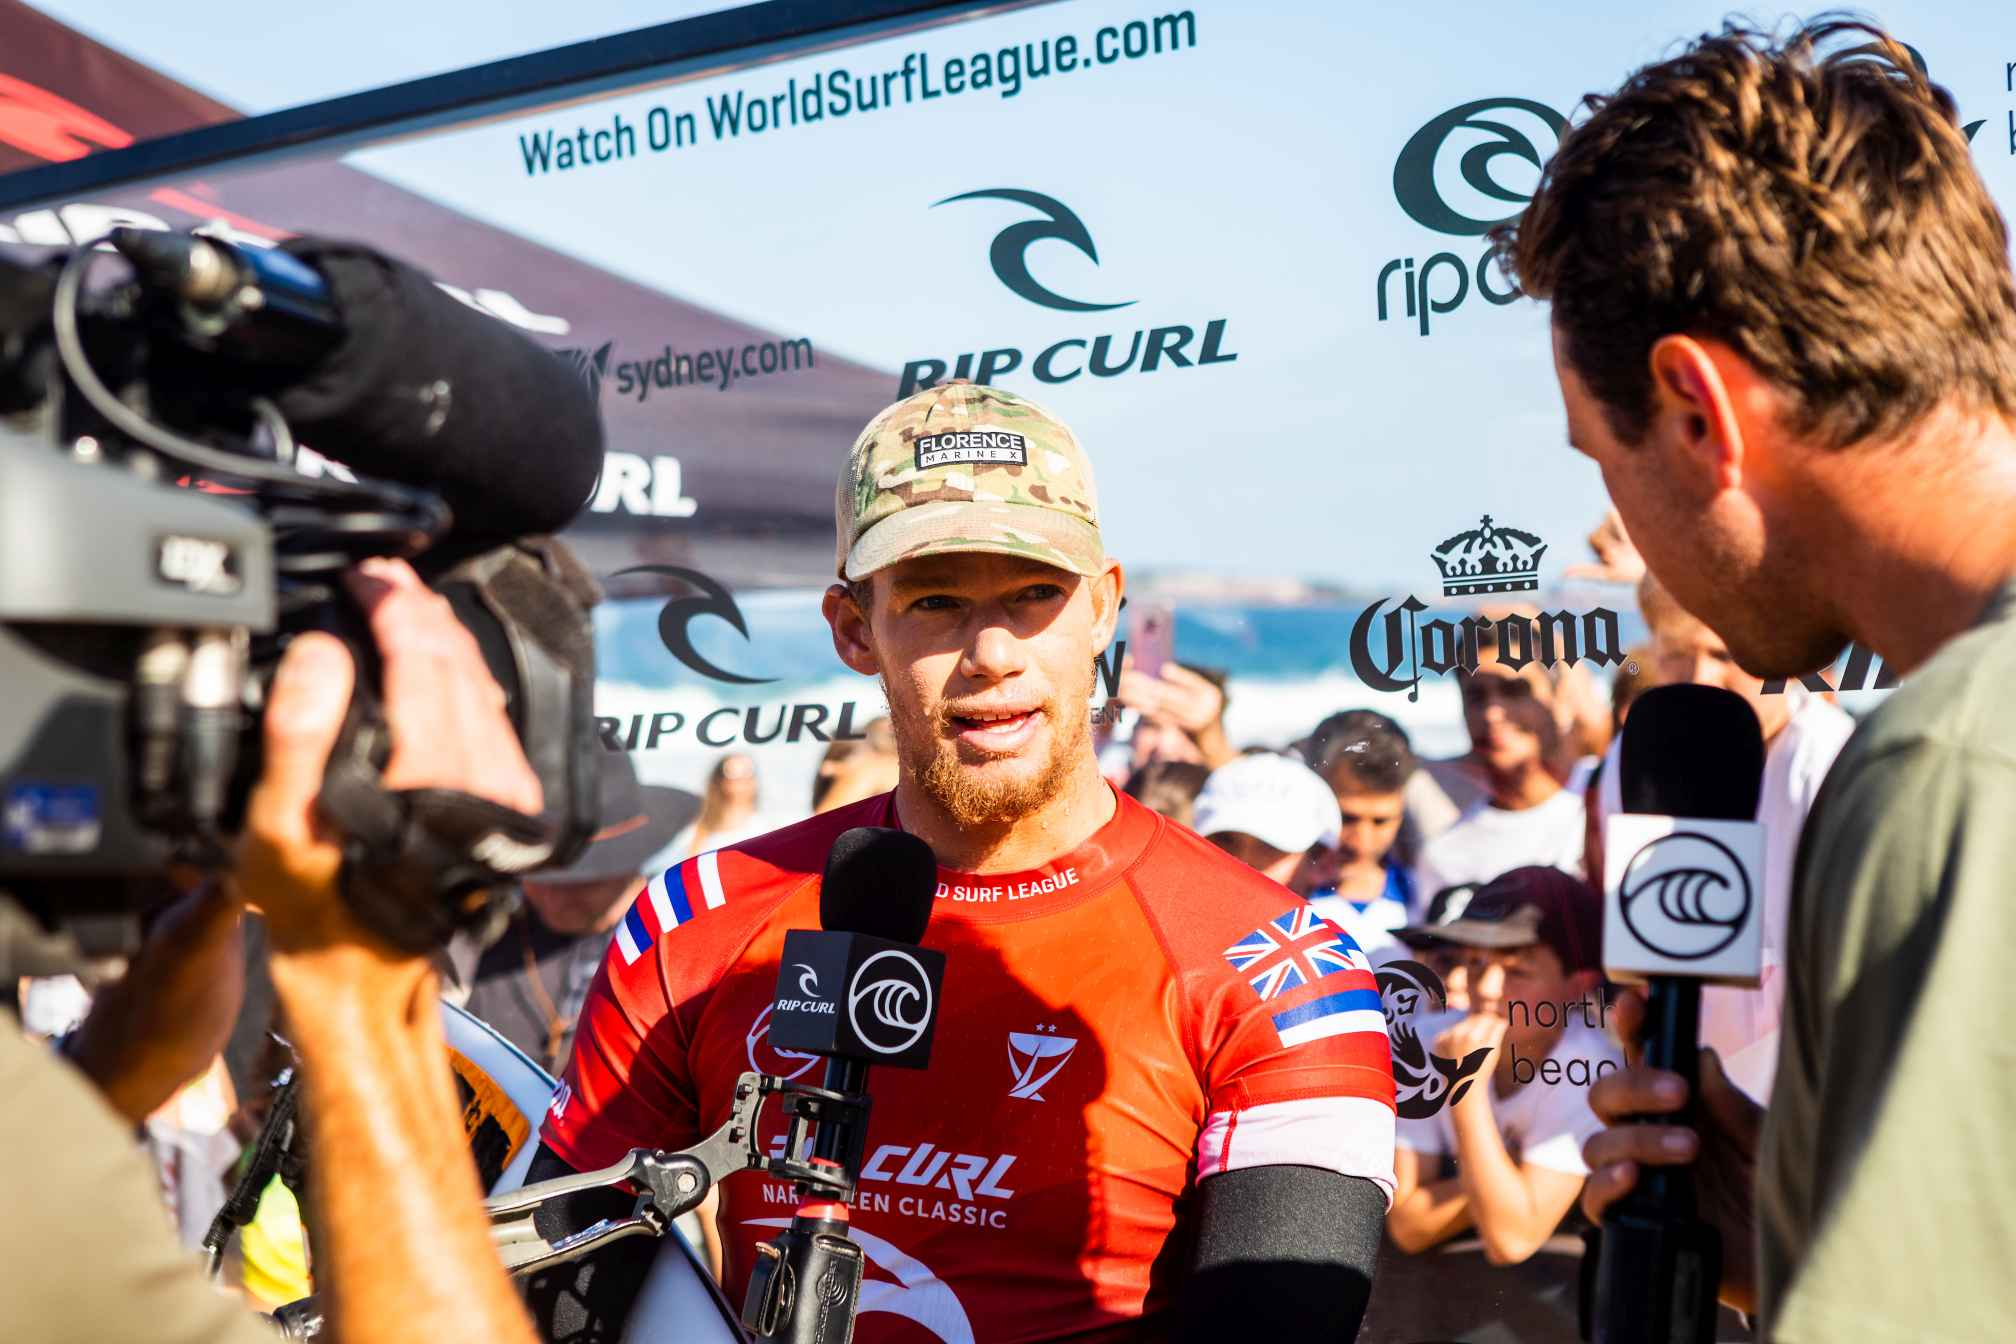 wsl rip curl narrabeen classic florence jj8908NARRABEEN21miers